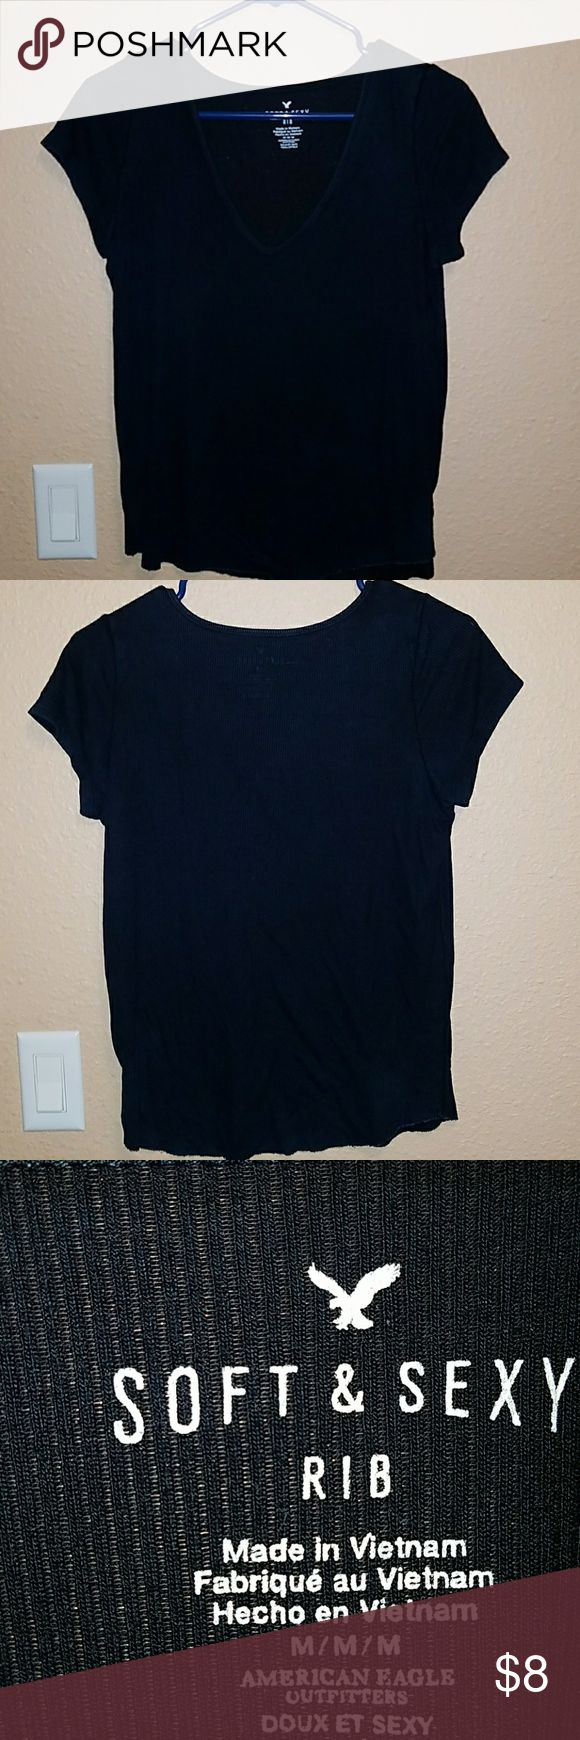 American Eagle T-shirt Extremly soft and in great condition. More of a navy blue than black. American Eagle Outfitters Tops Tees - Short Sleeve